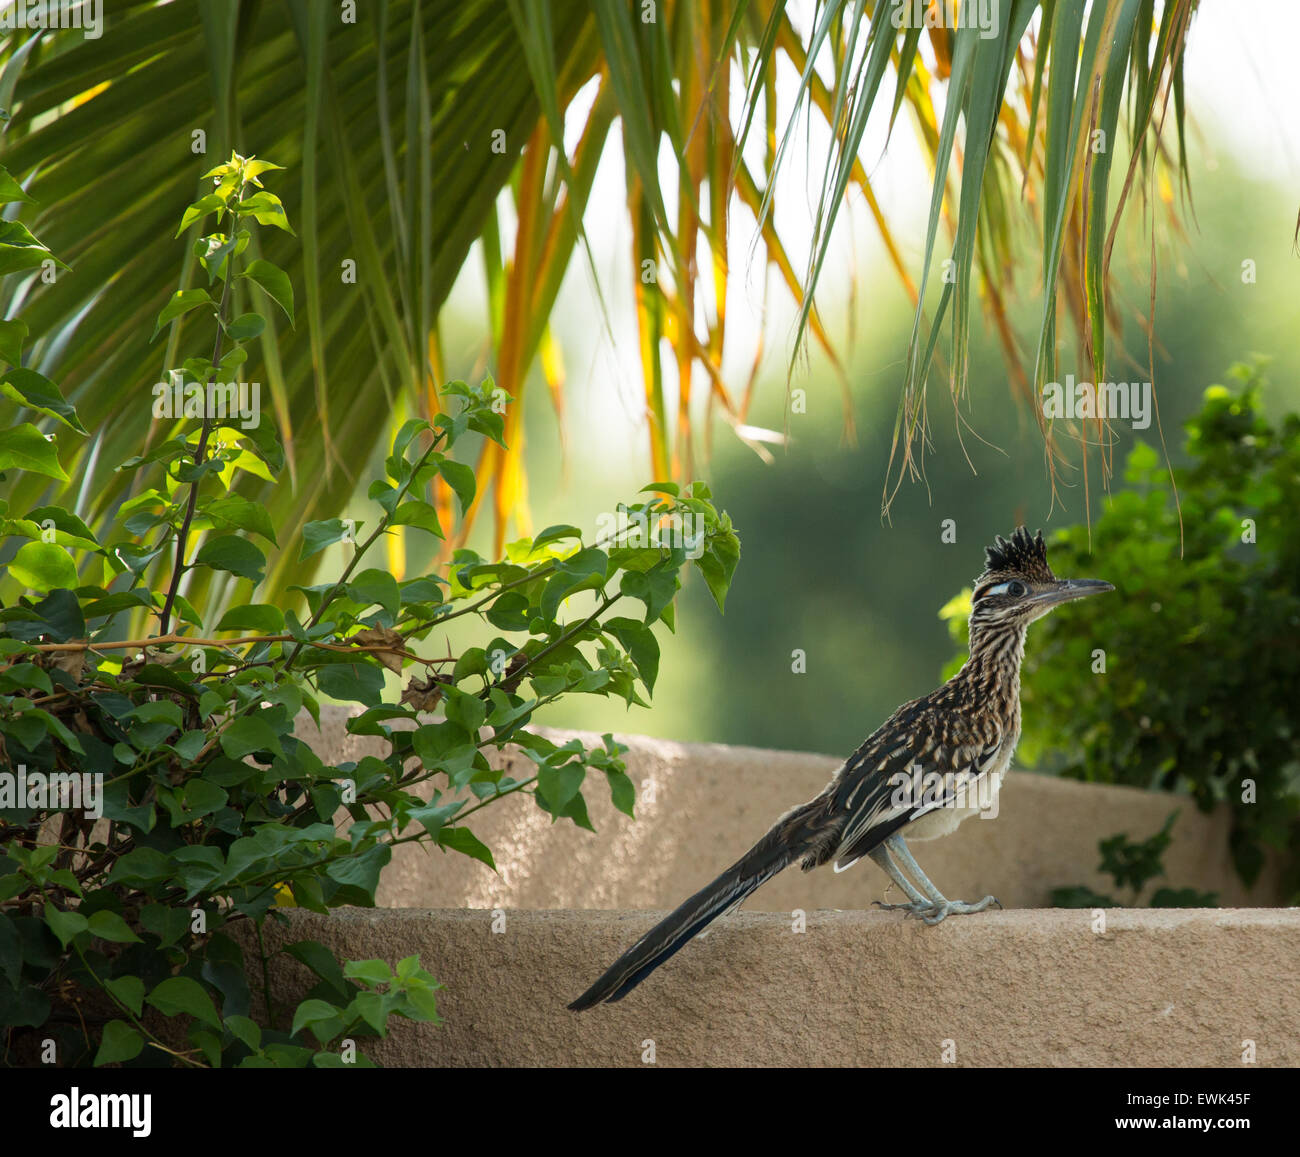 Roadrunner on a ledge with palm fronds - Stock Image